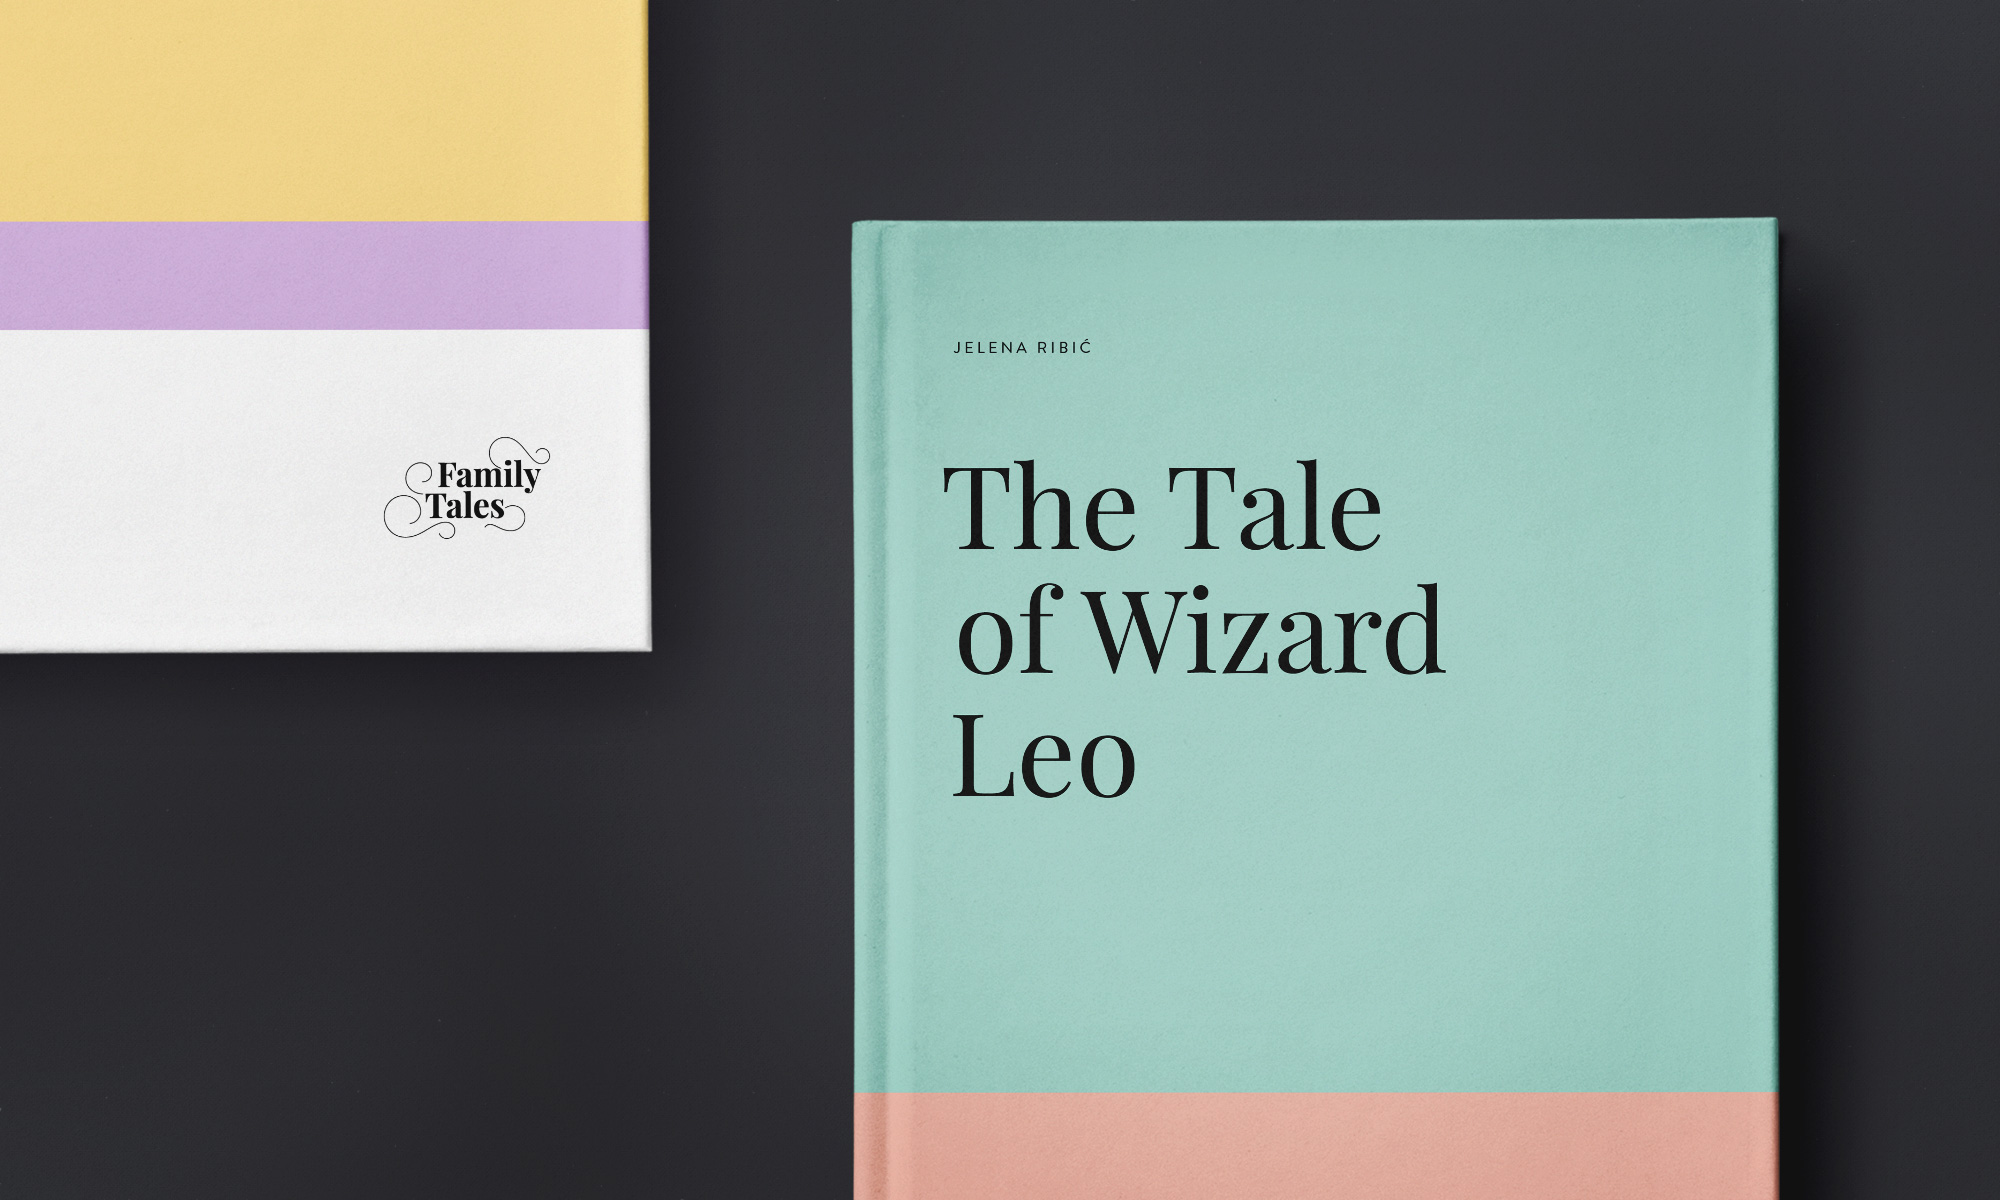 Branding & Art Direction: Family Tales Book